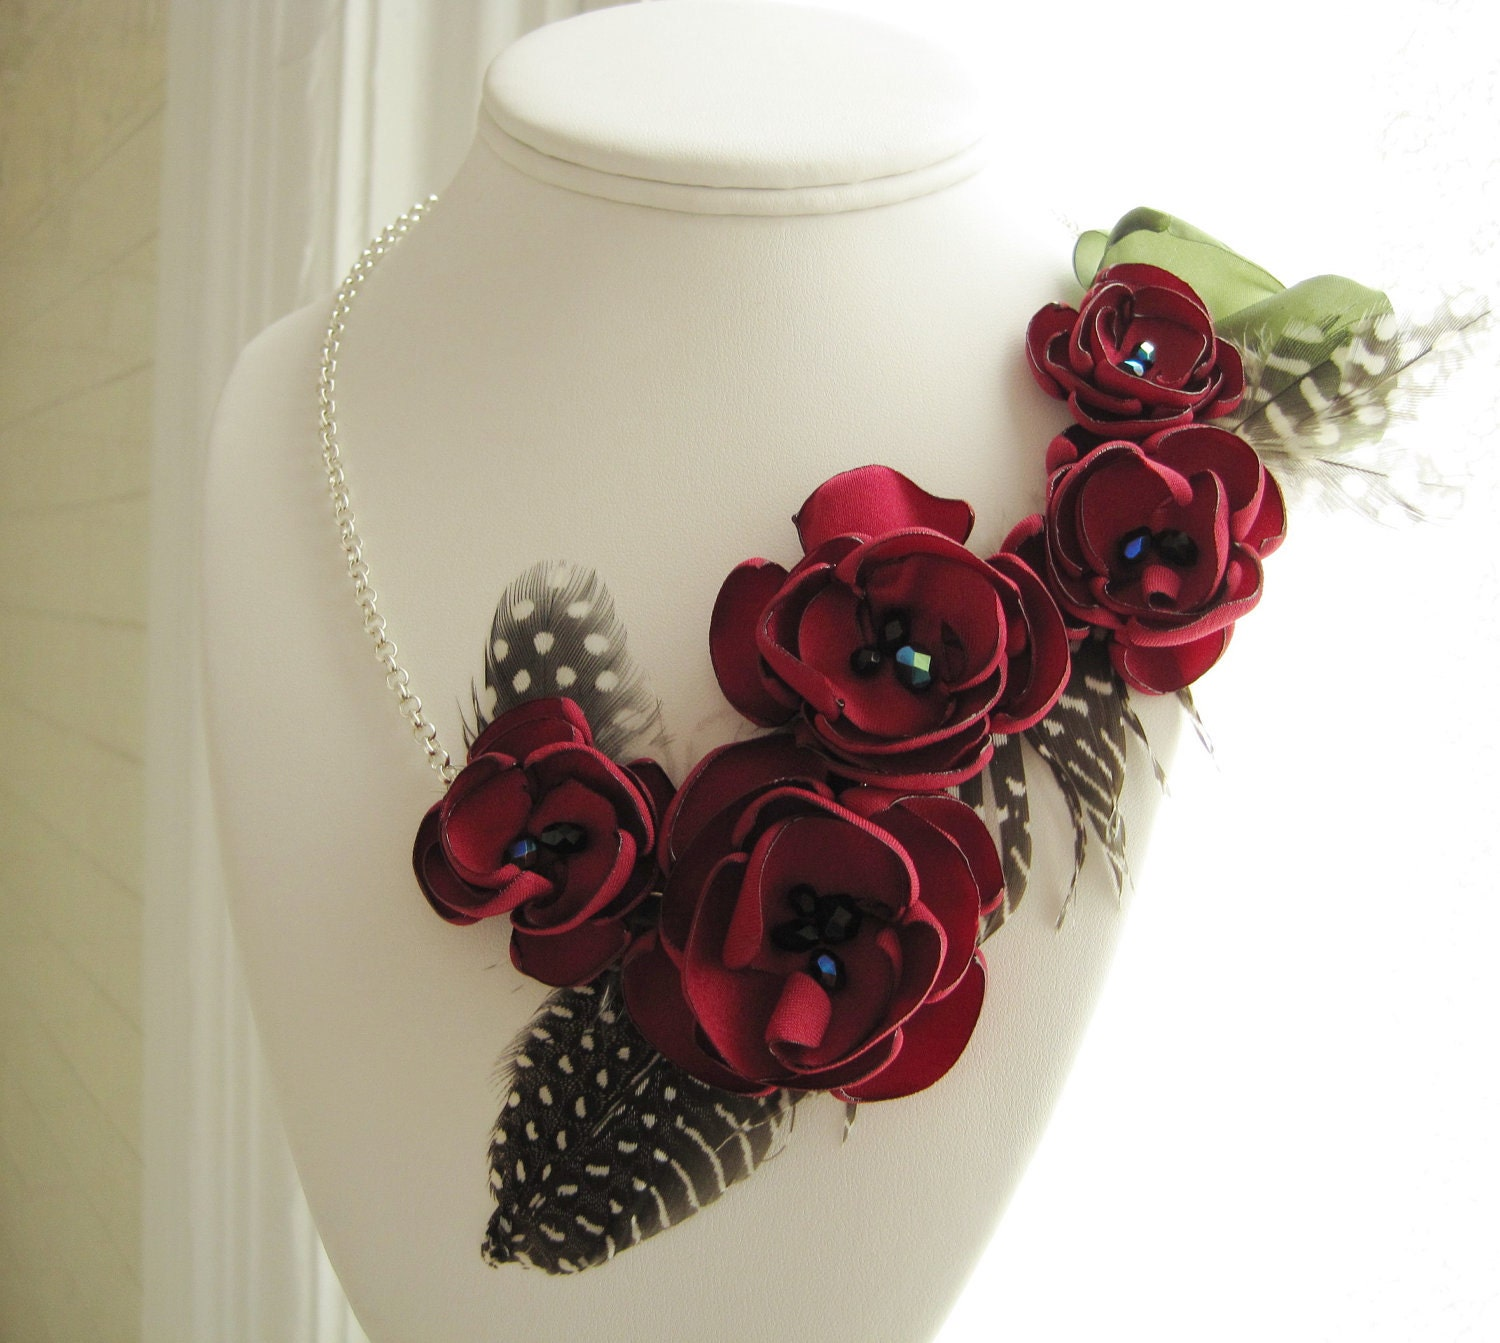 fabric flower necklace asymmetrical by MariaLouiseHightoo on Etsy